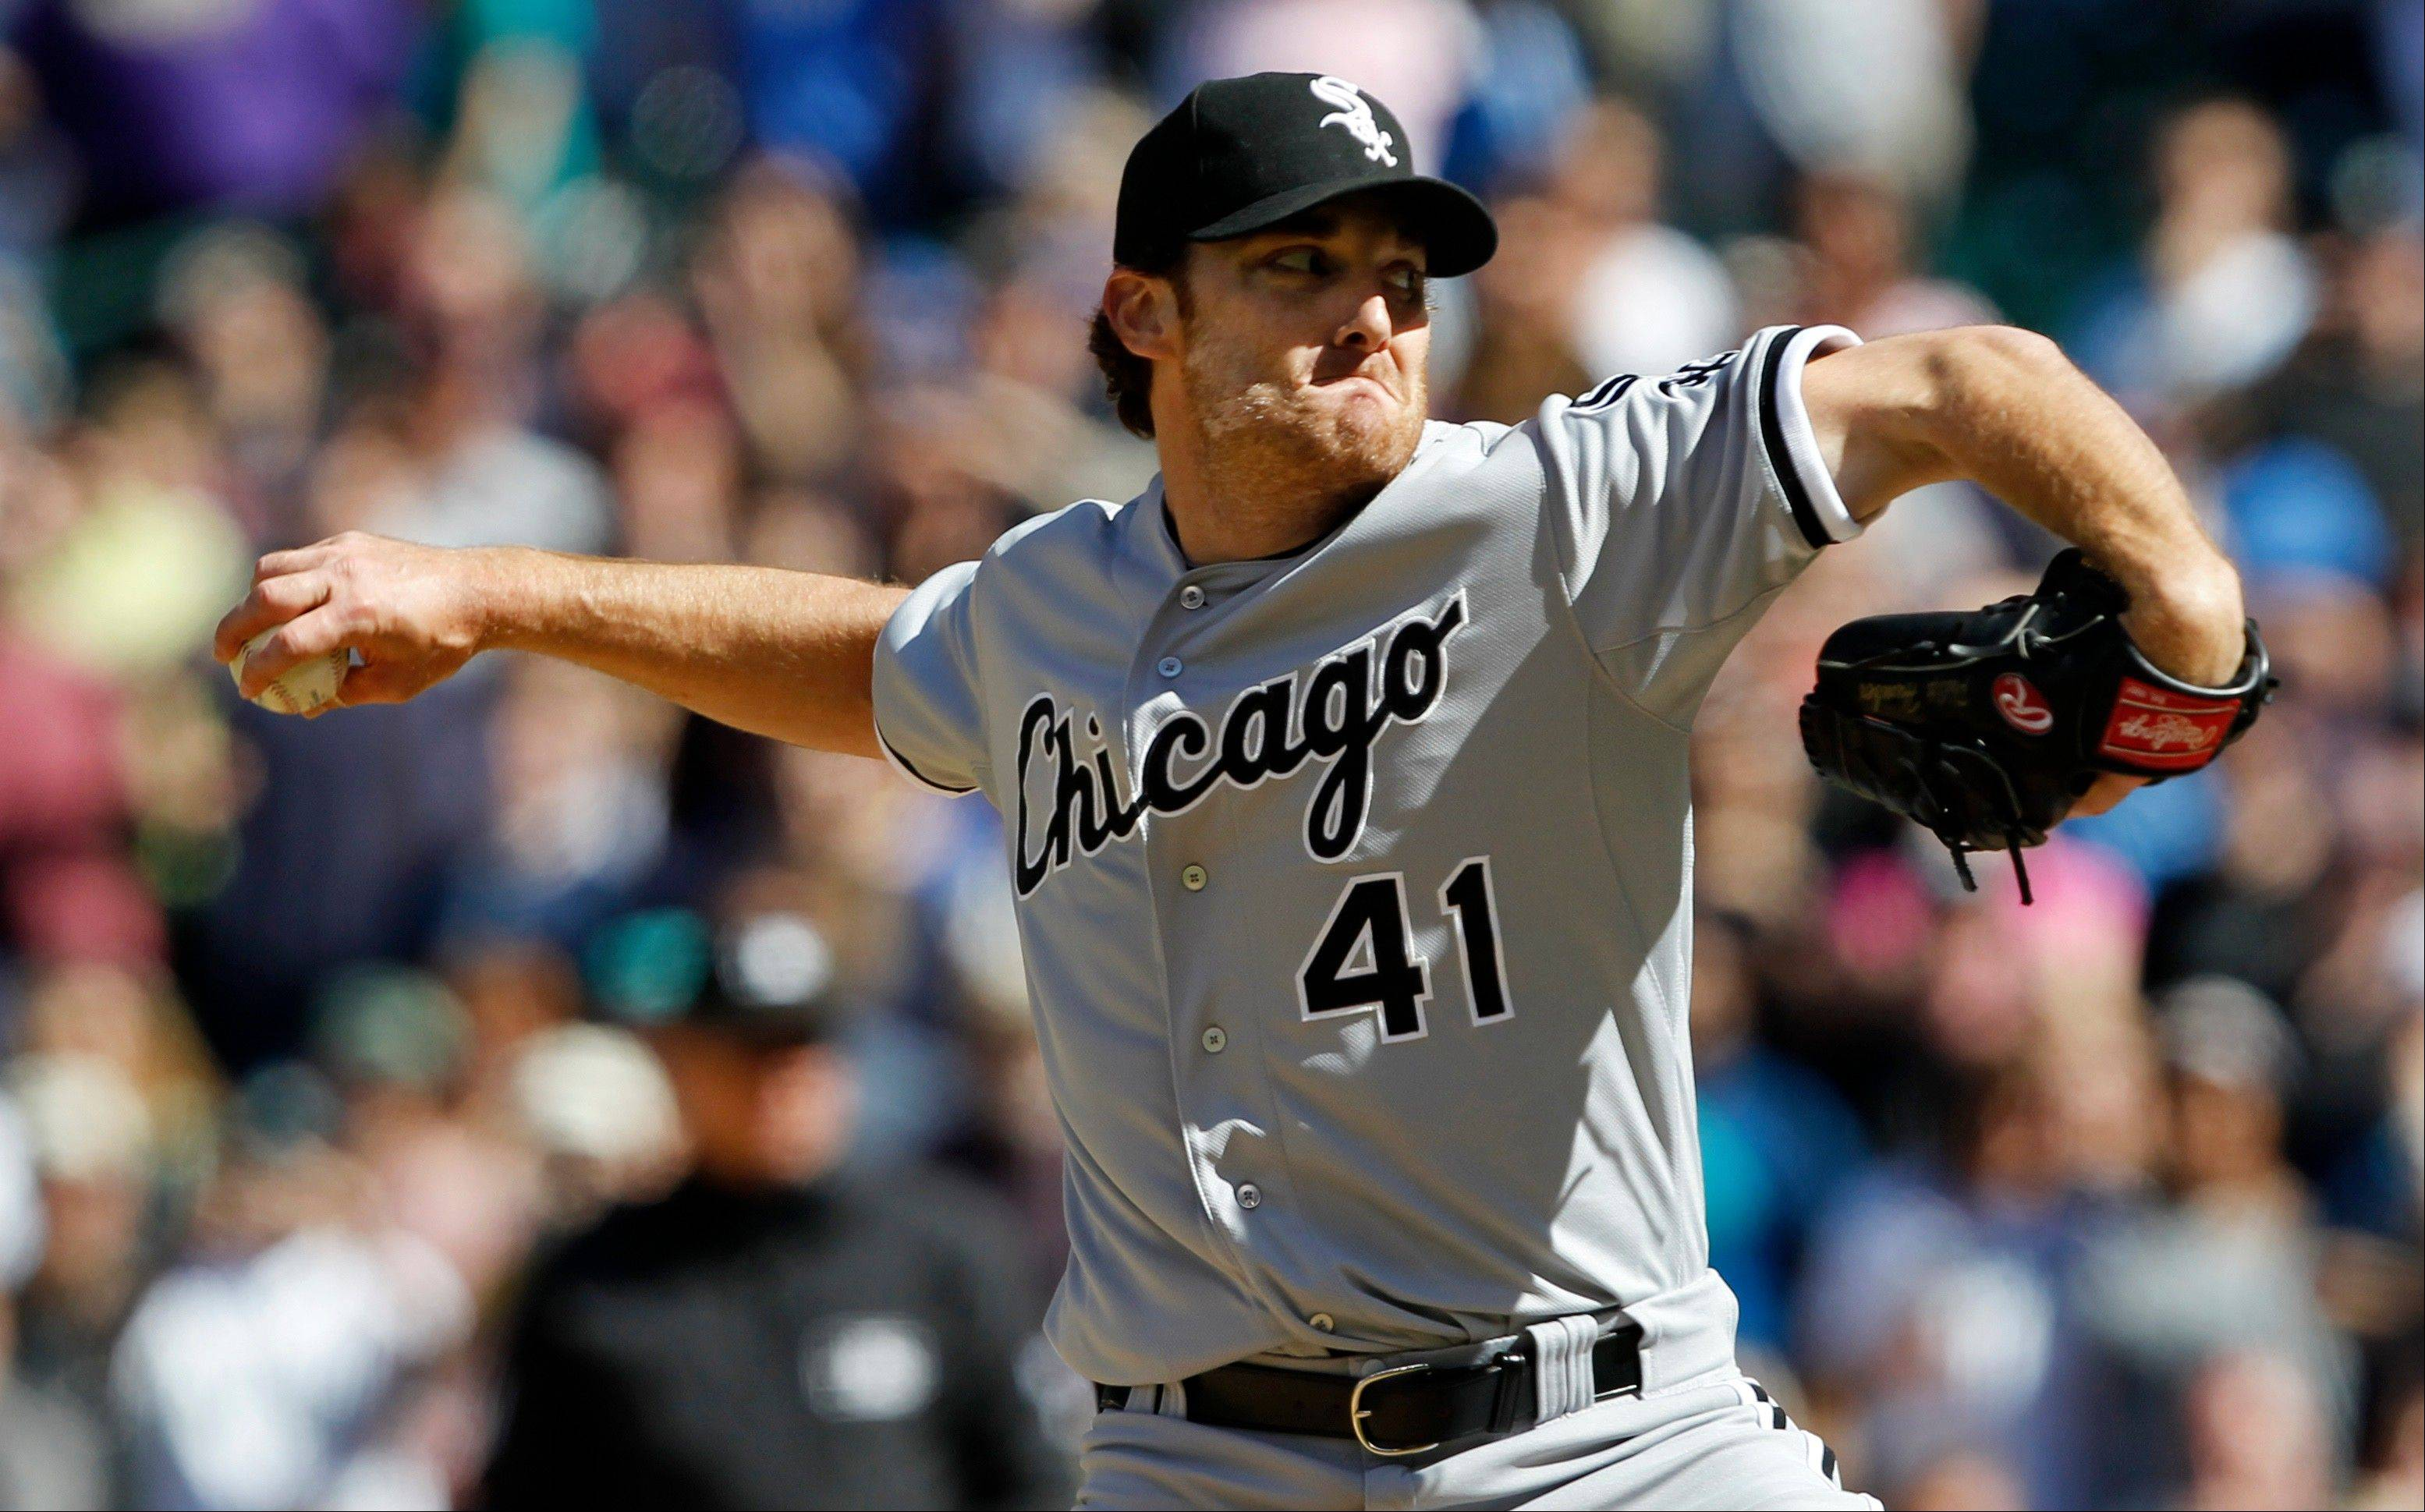 White Sox starting pitcher Phil Humber throws to the final batter while pitching a perfect game Saturday against the Seattle Mariners in Seattle.